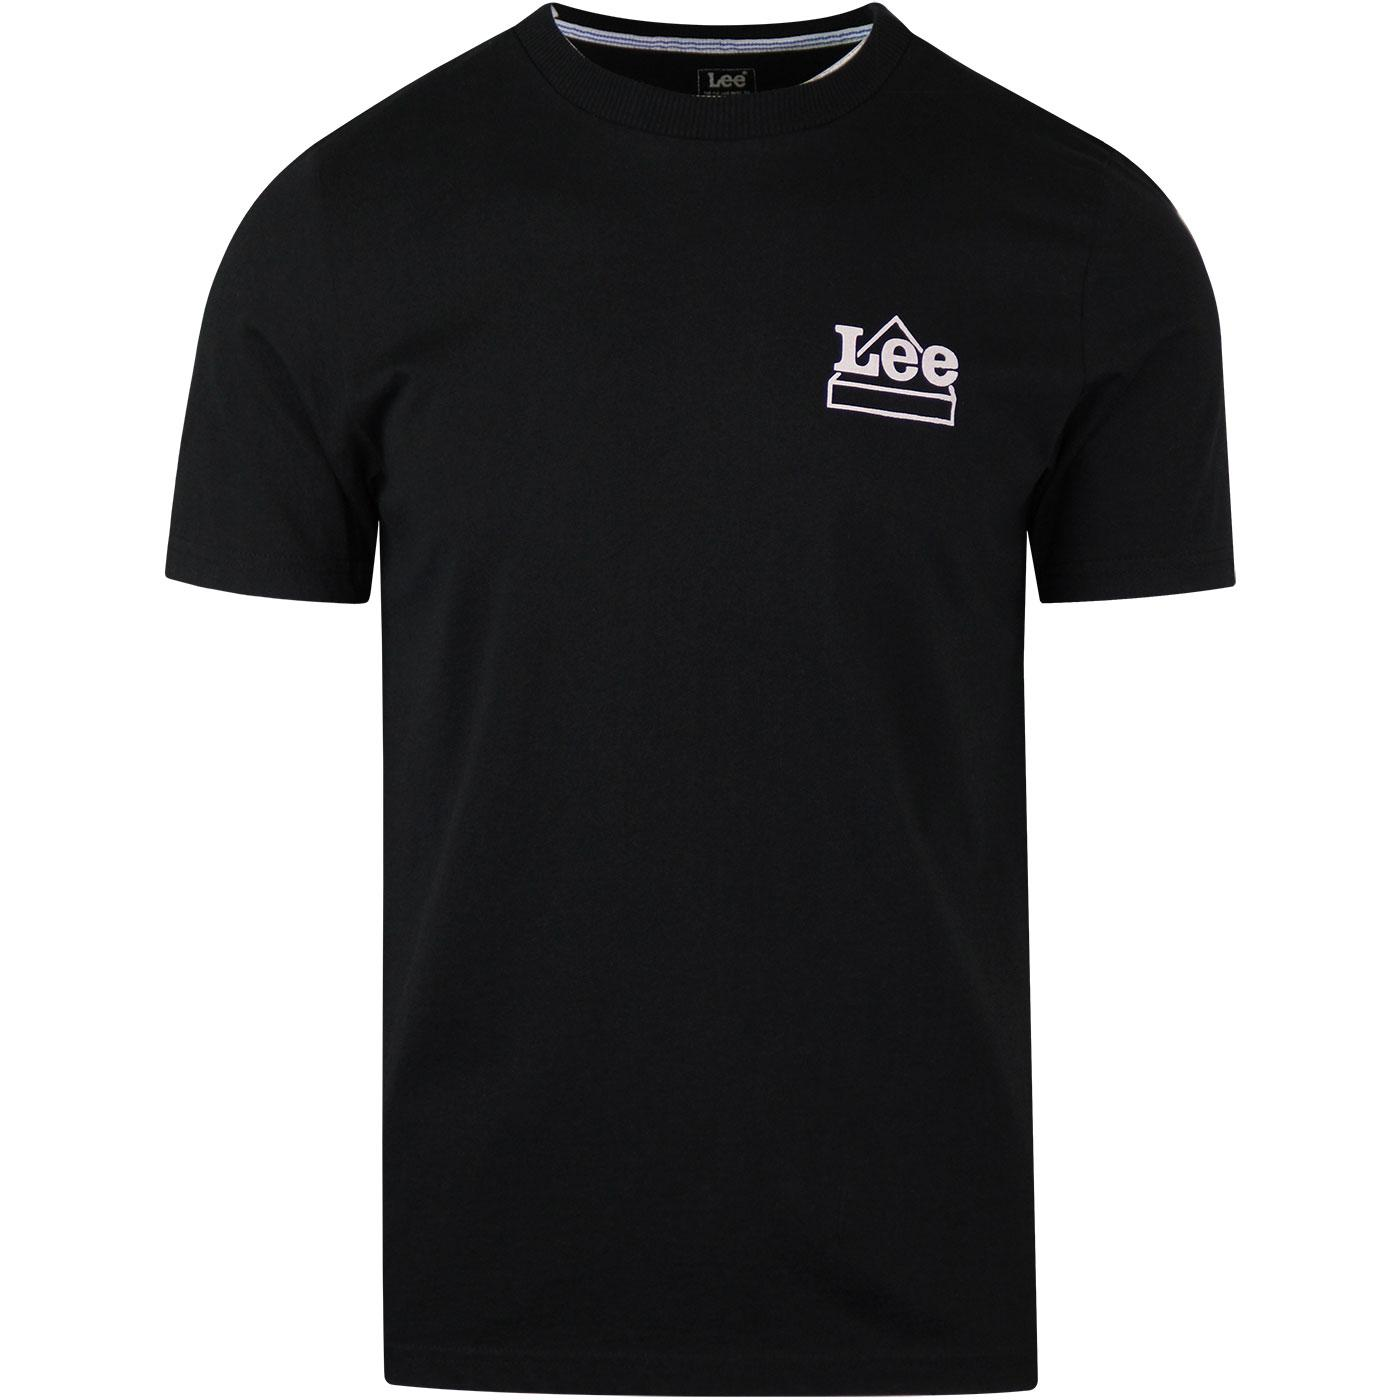 LEE Men's Retro 80s Crew Neck Logo T-shirt (Black)